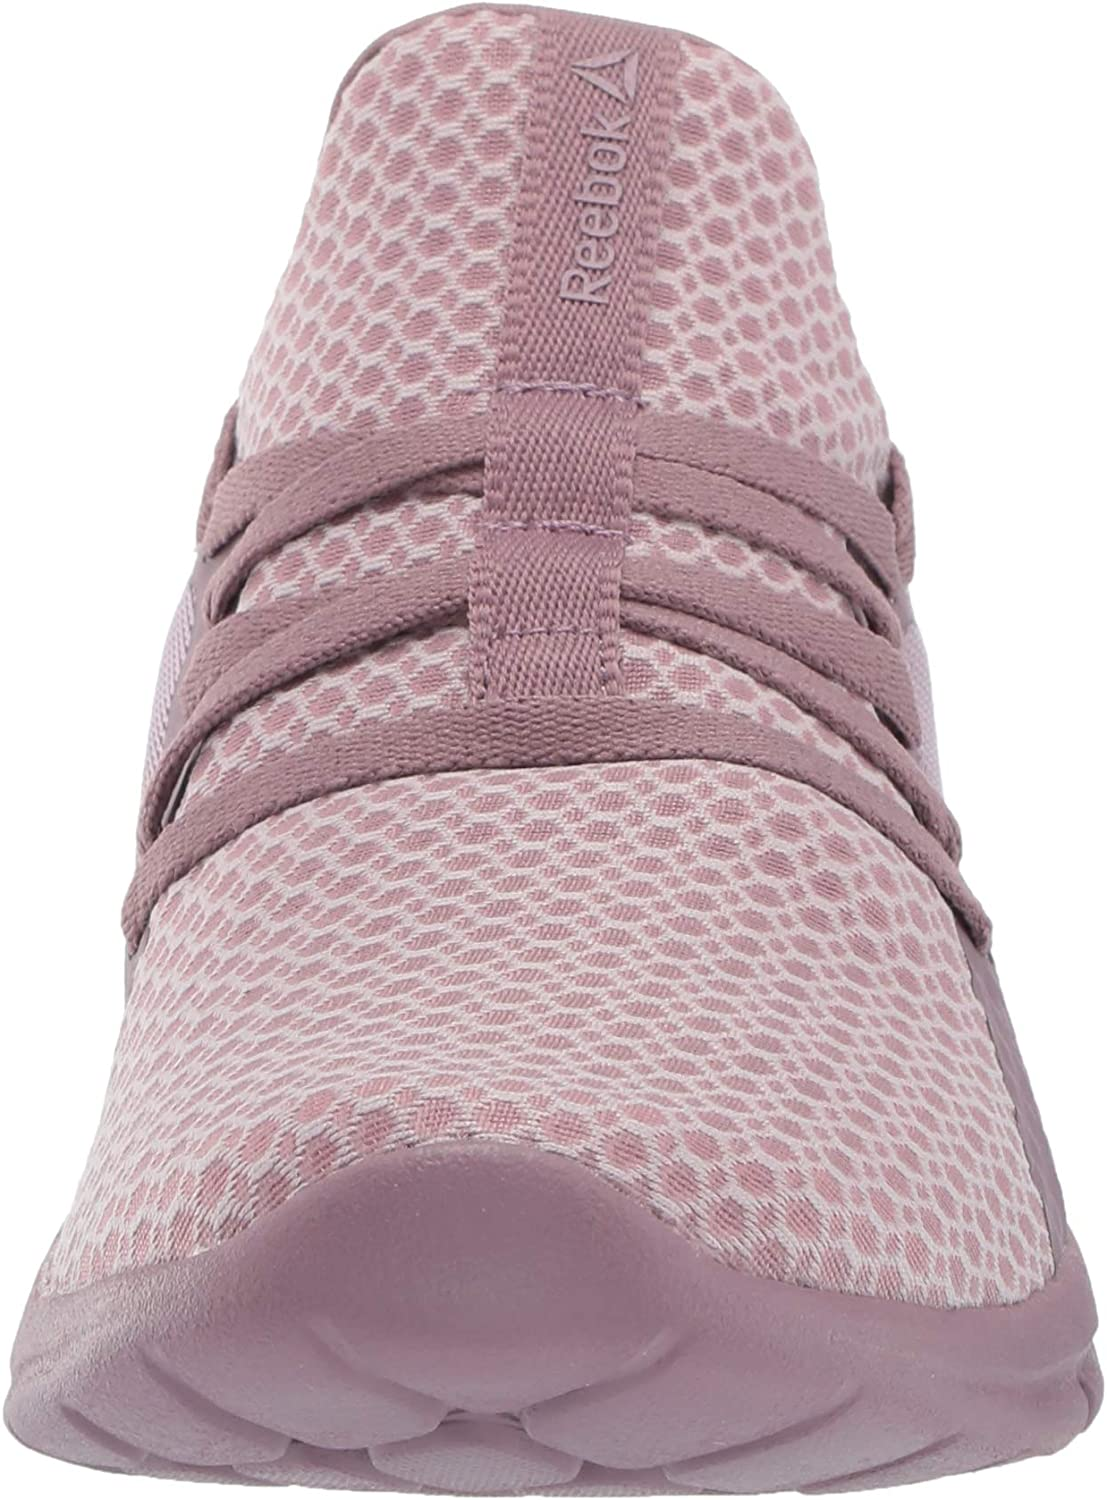 Reebok Women's Print Her 3.0 Lilac Fog/Noble Orchid/White